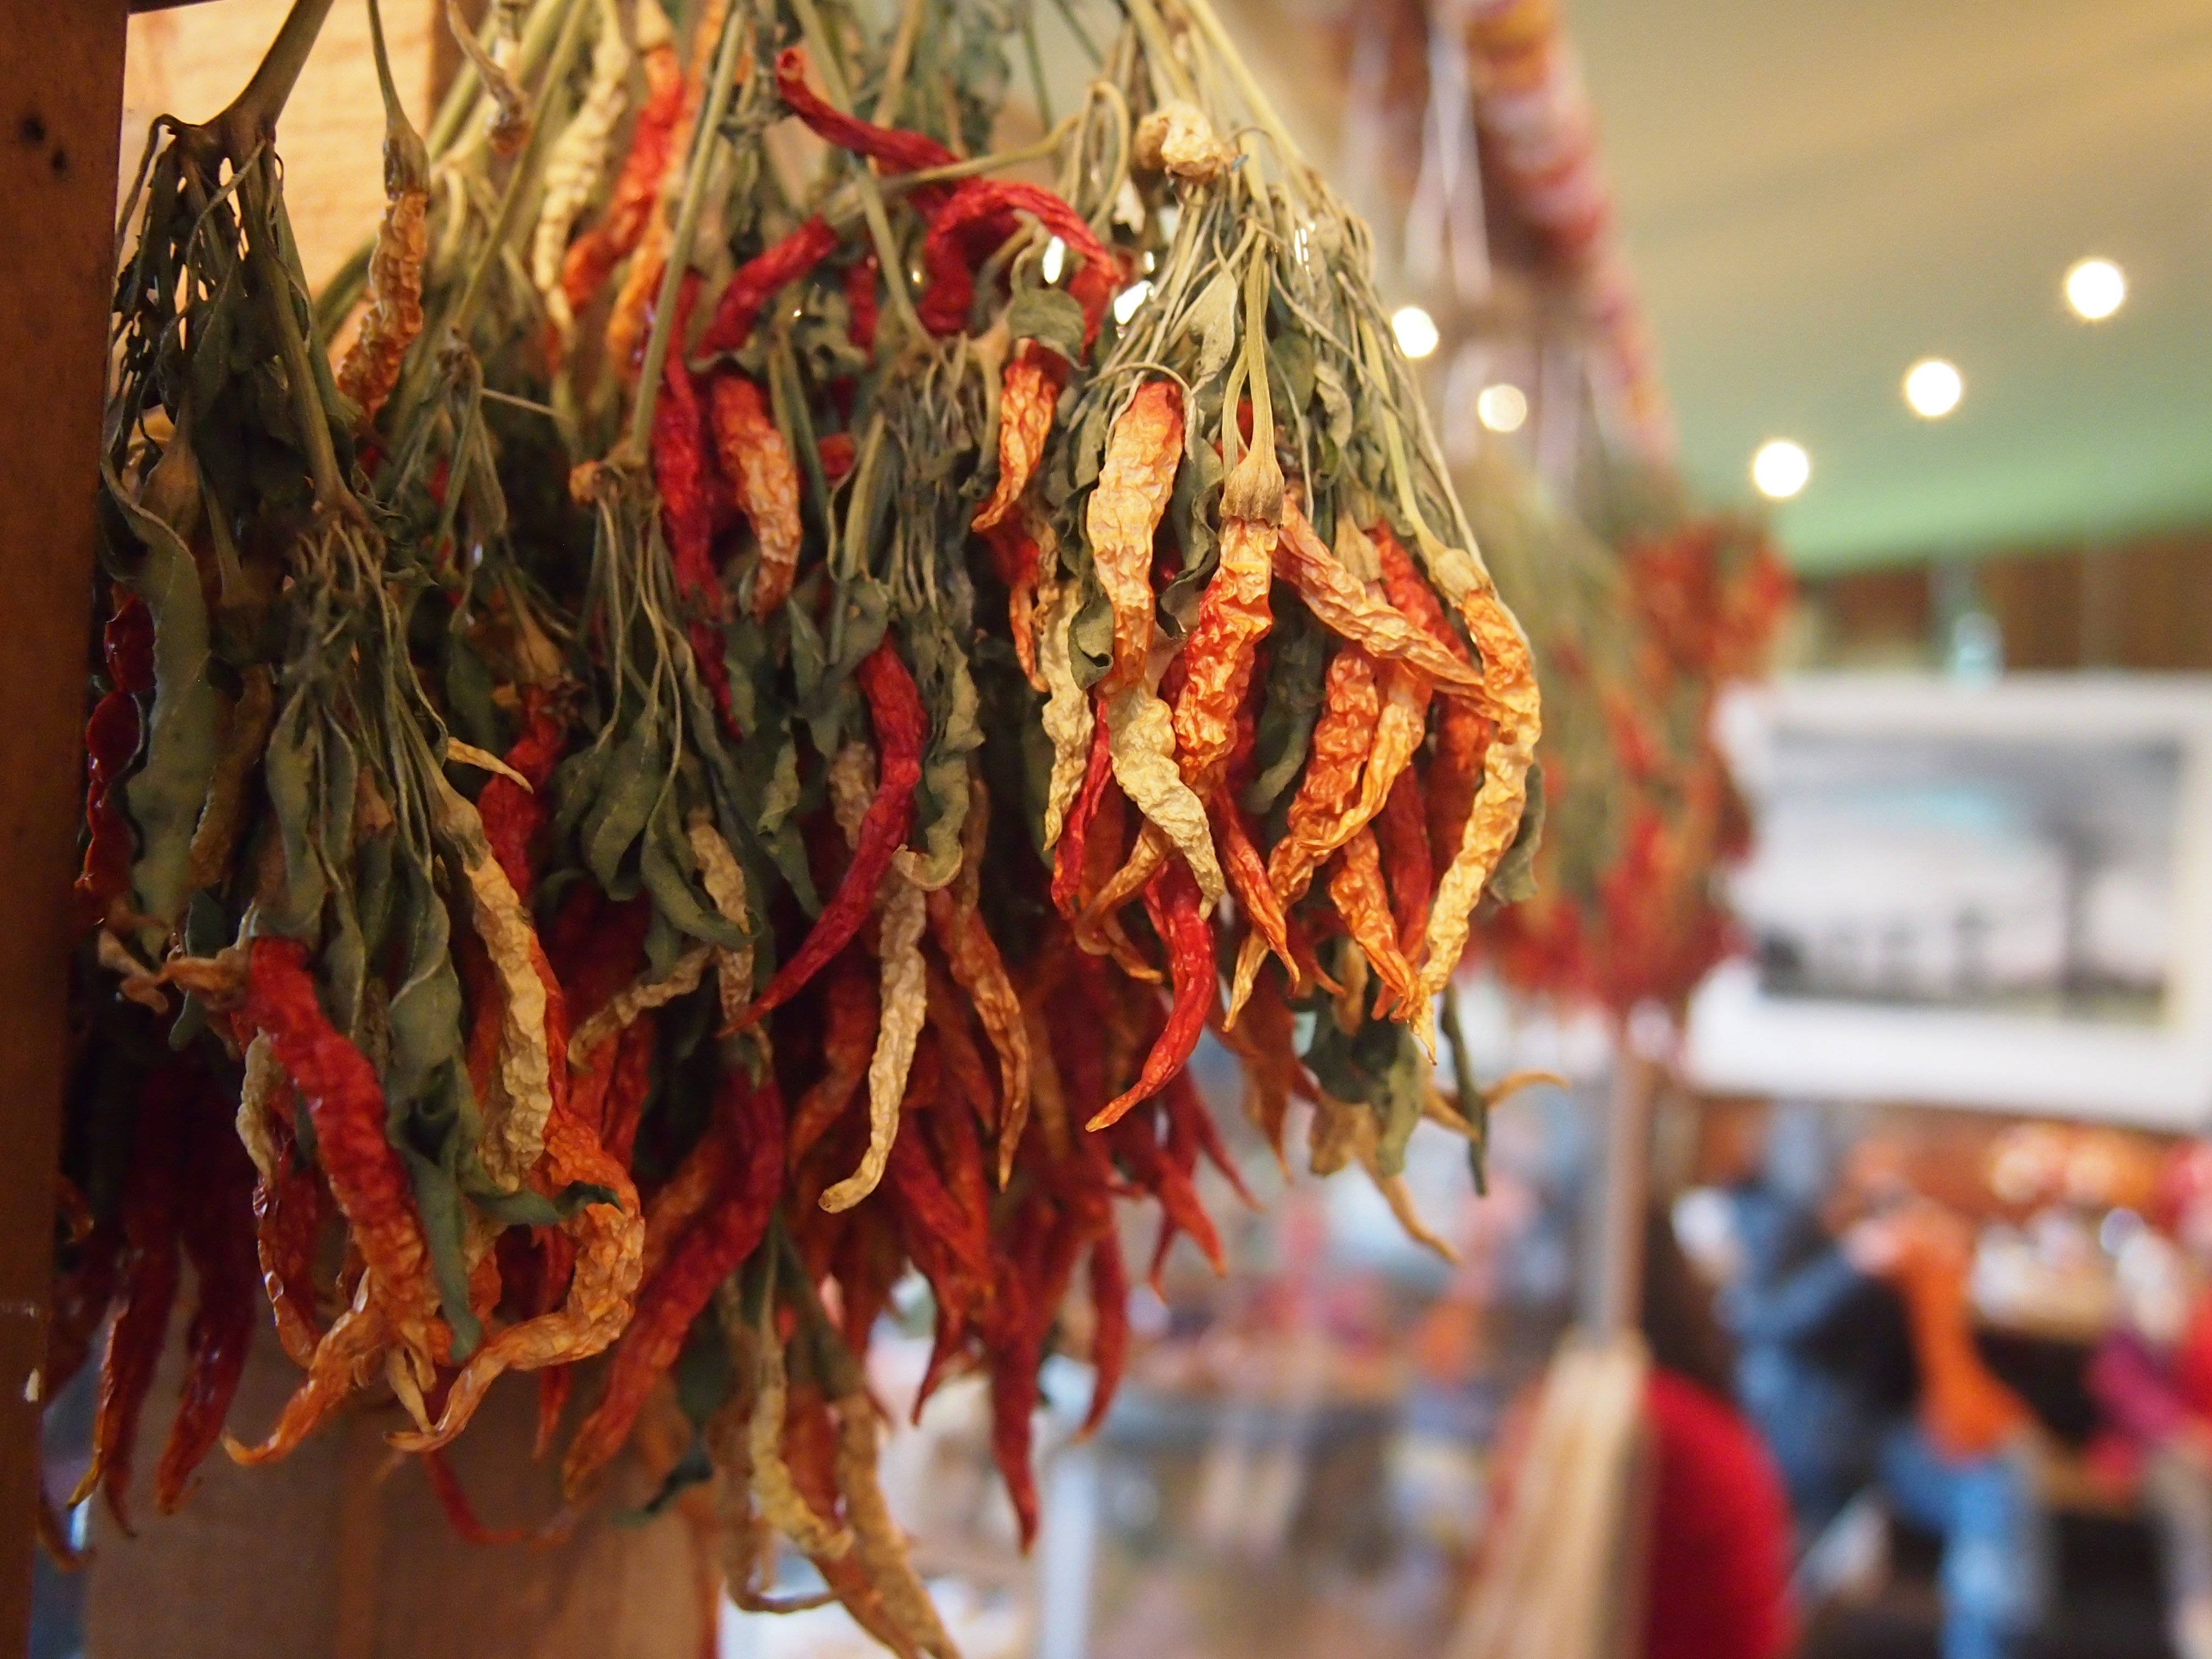 Dried chilies at Tweets, Edison, WA